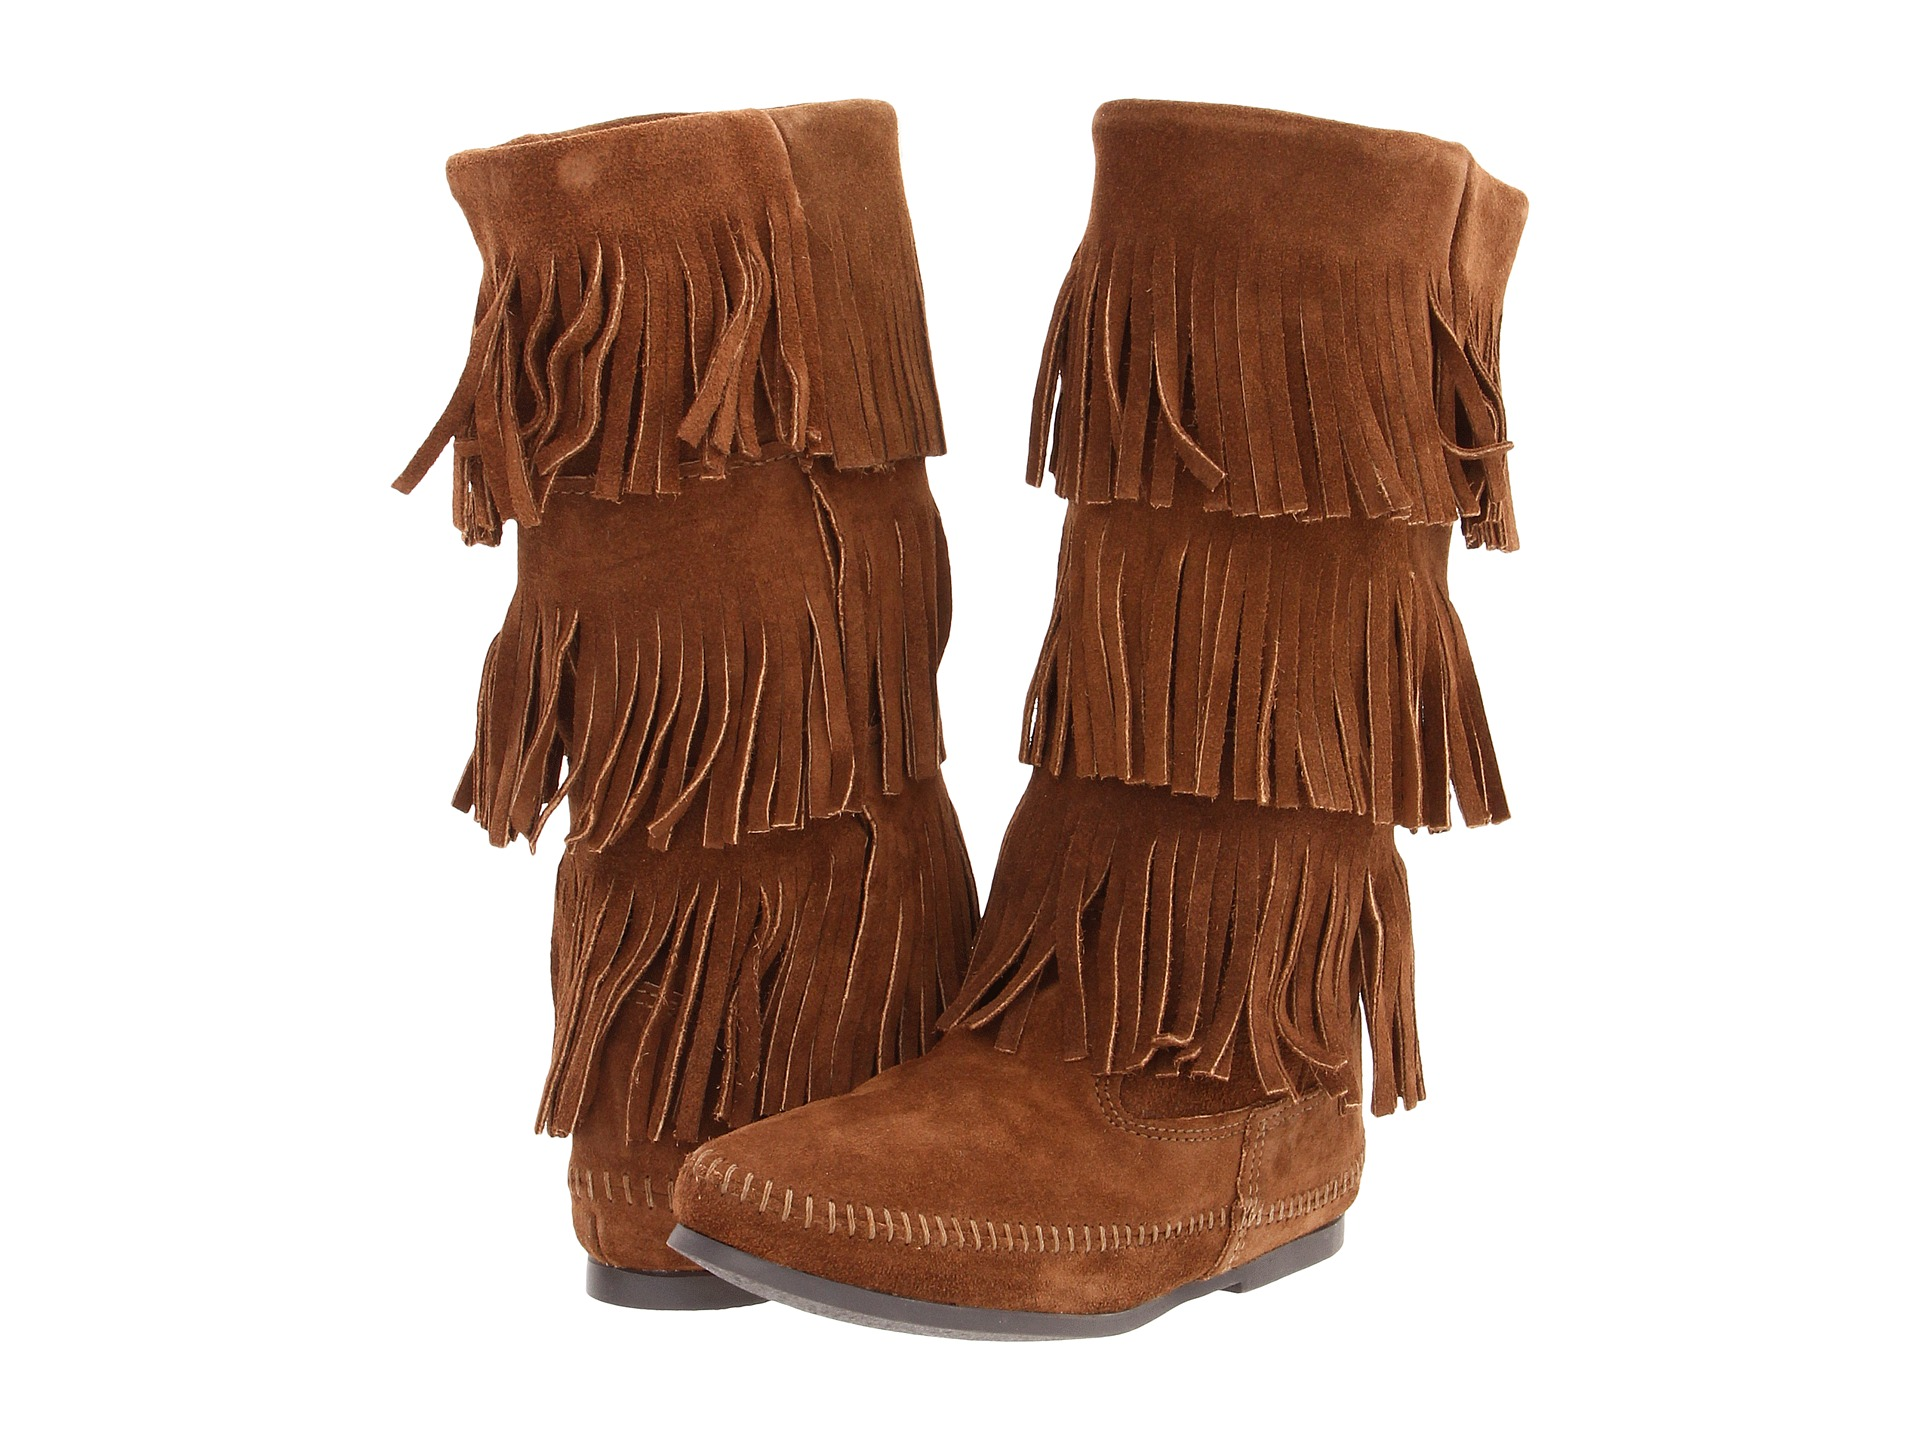 Online shoes Where can i buy fringe boots